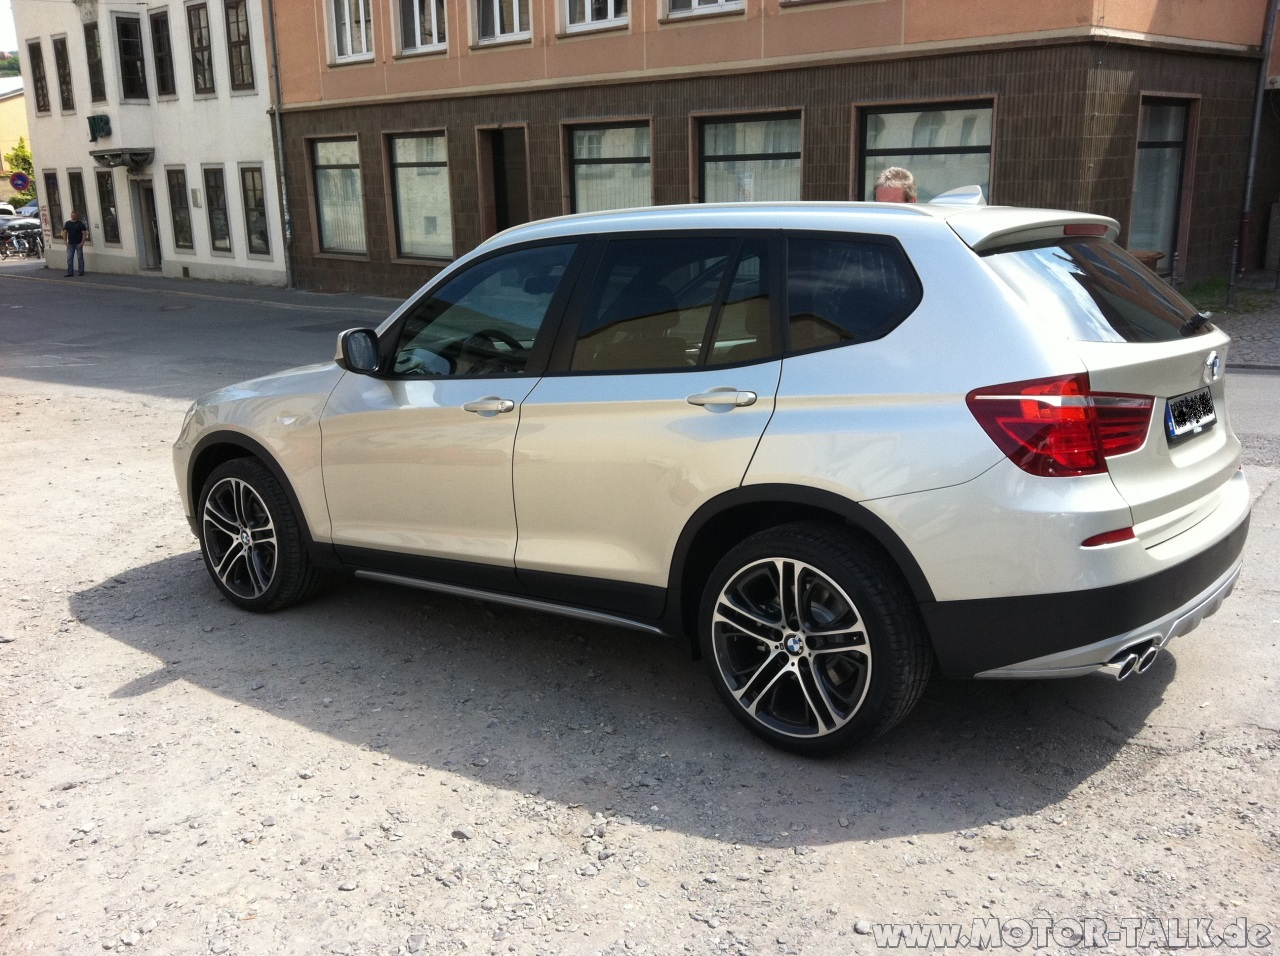 @SomeRandomer123: I don't think so. See the BMW X3 original accessories